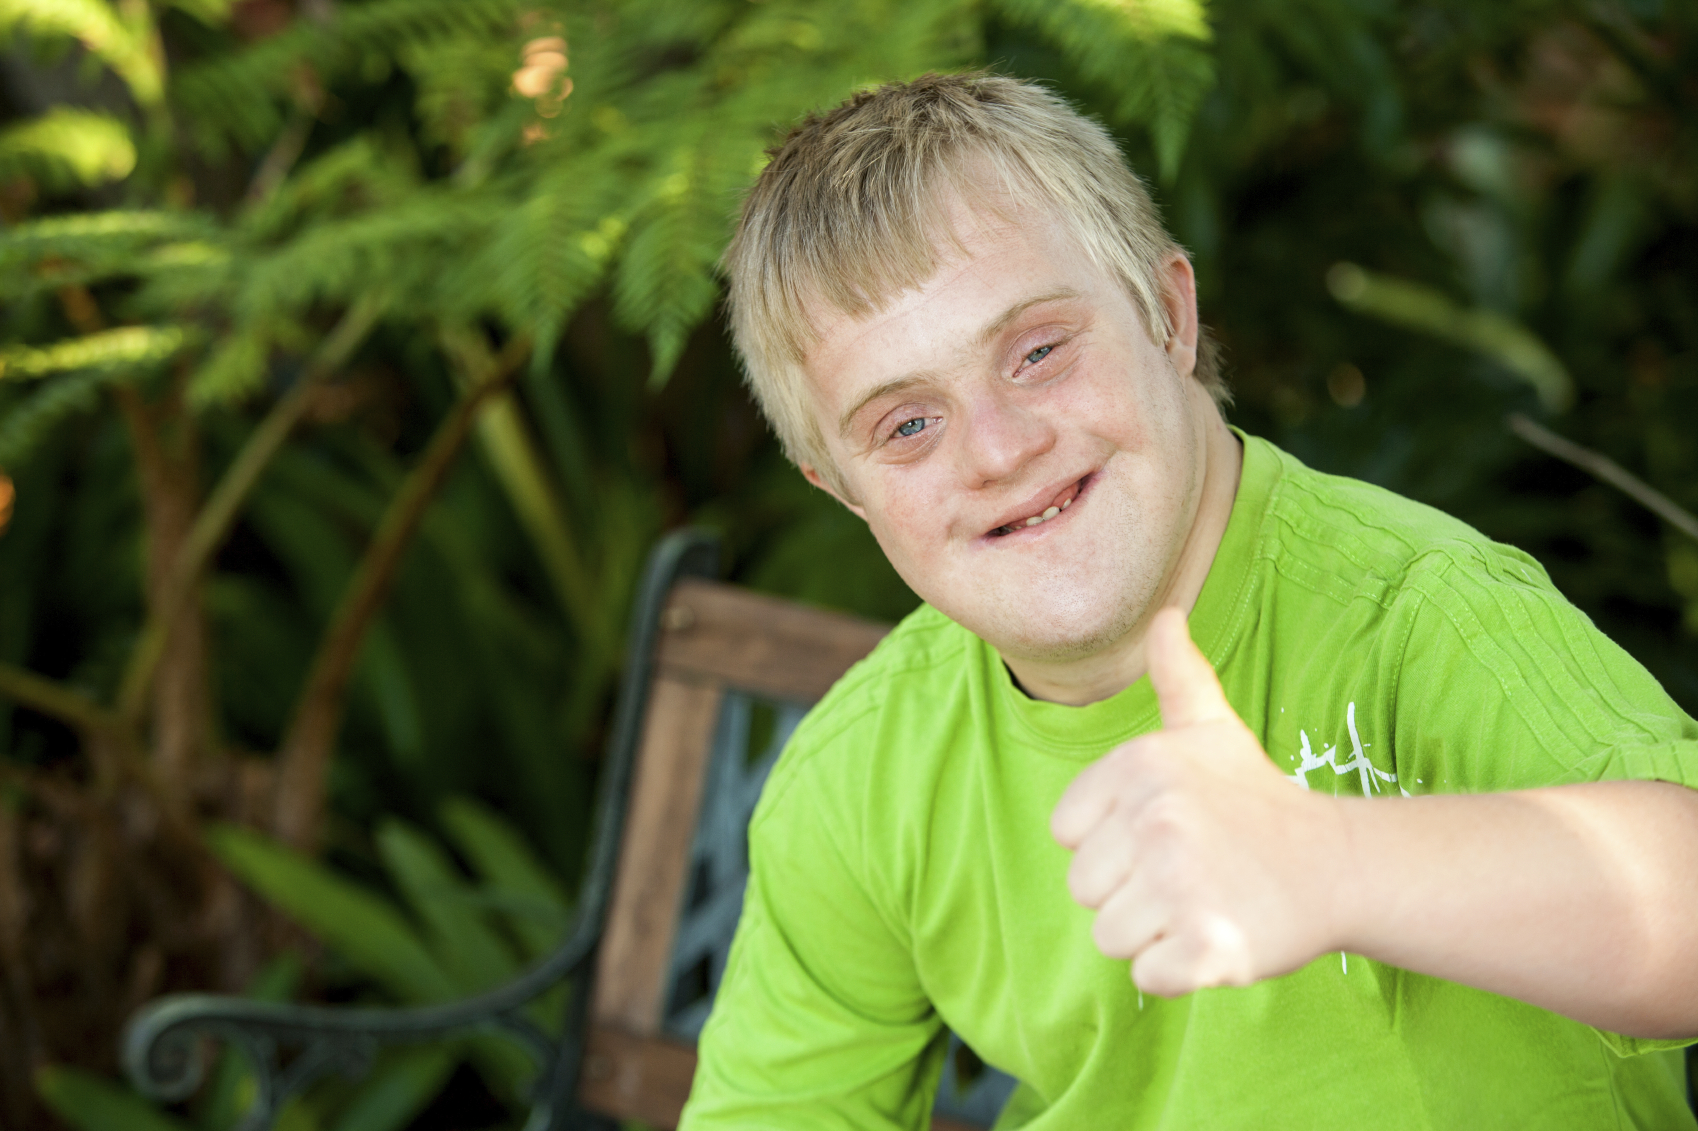 Person with Down Syndrome showing a thumbs up